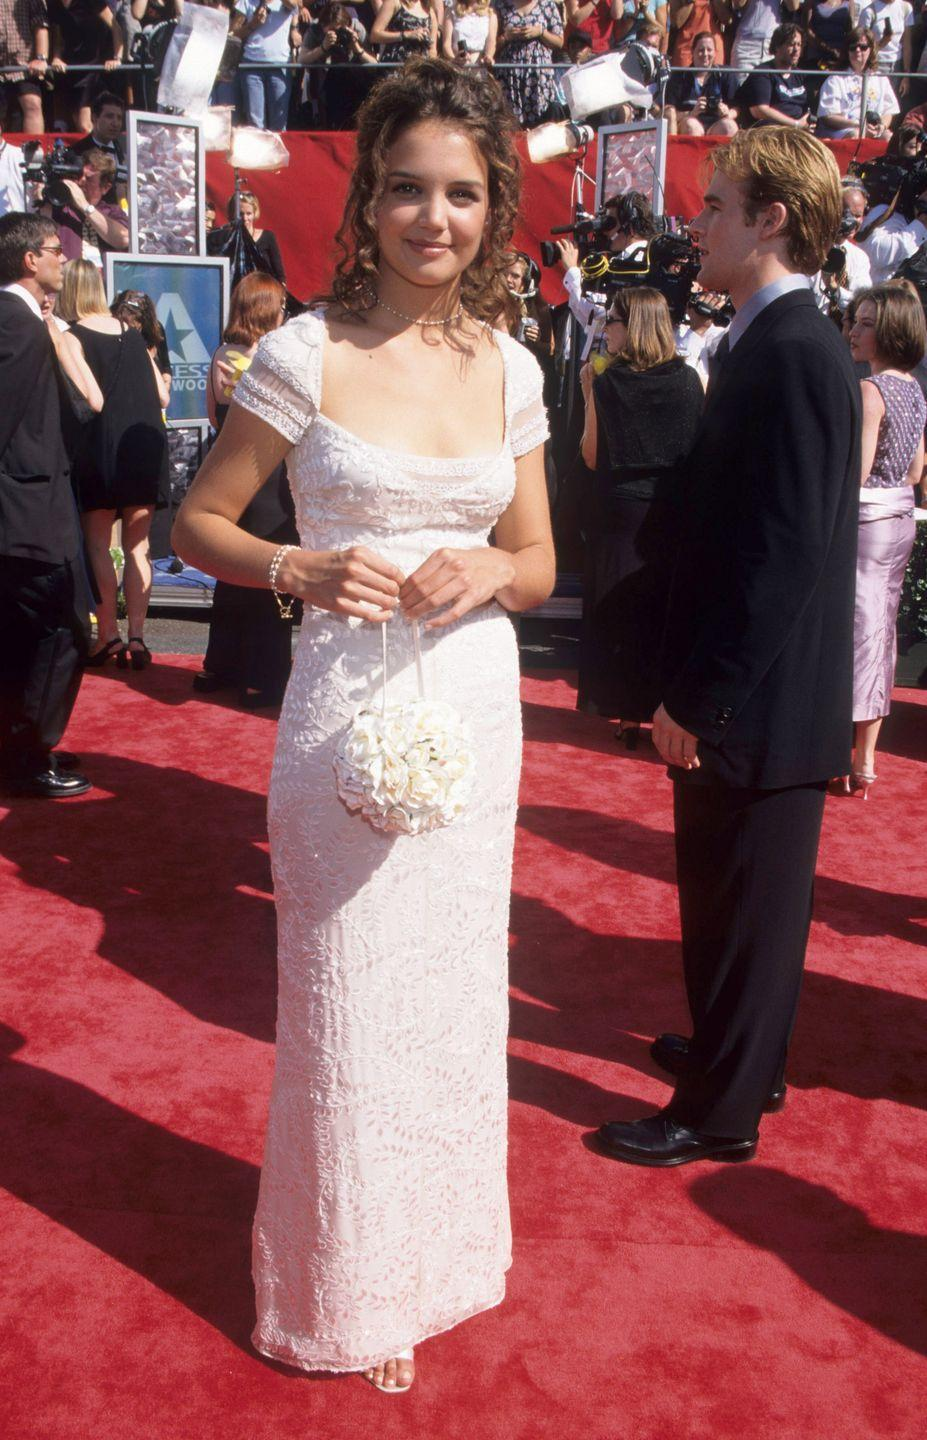 """<p>Why yes, that <em>is</em><span class=""""redactor-invisible-space""""> James Van Der Beek in the background of this picture. He escorted a cap-sleeved Holmes to the Emmy Awards in </span>1998.</p>"""